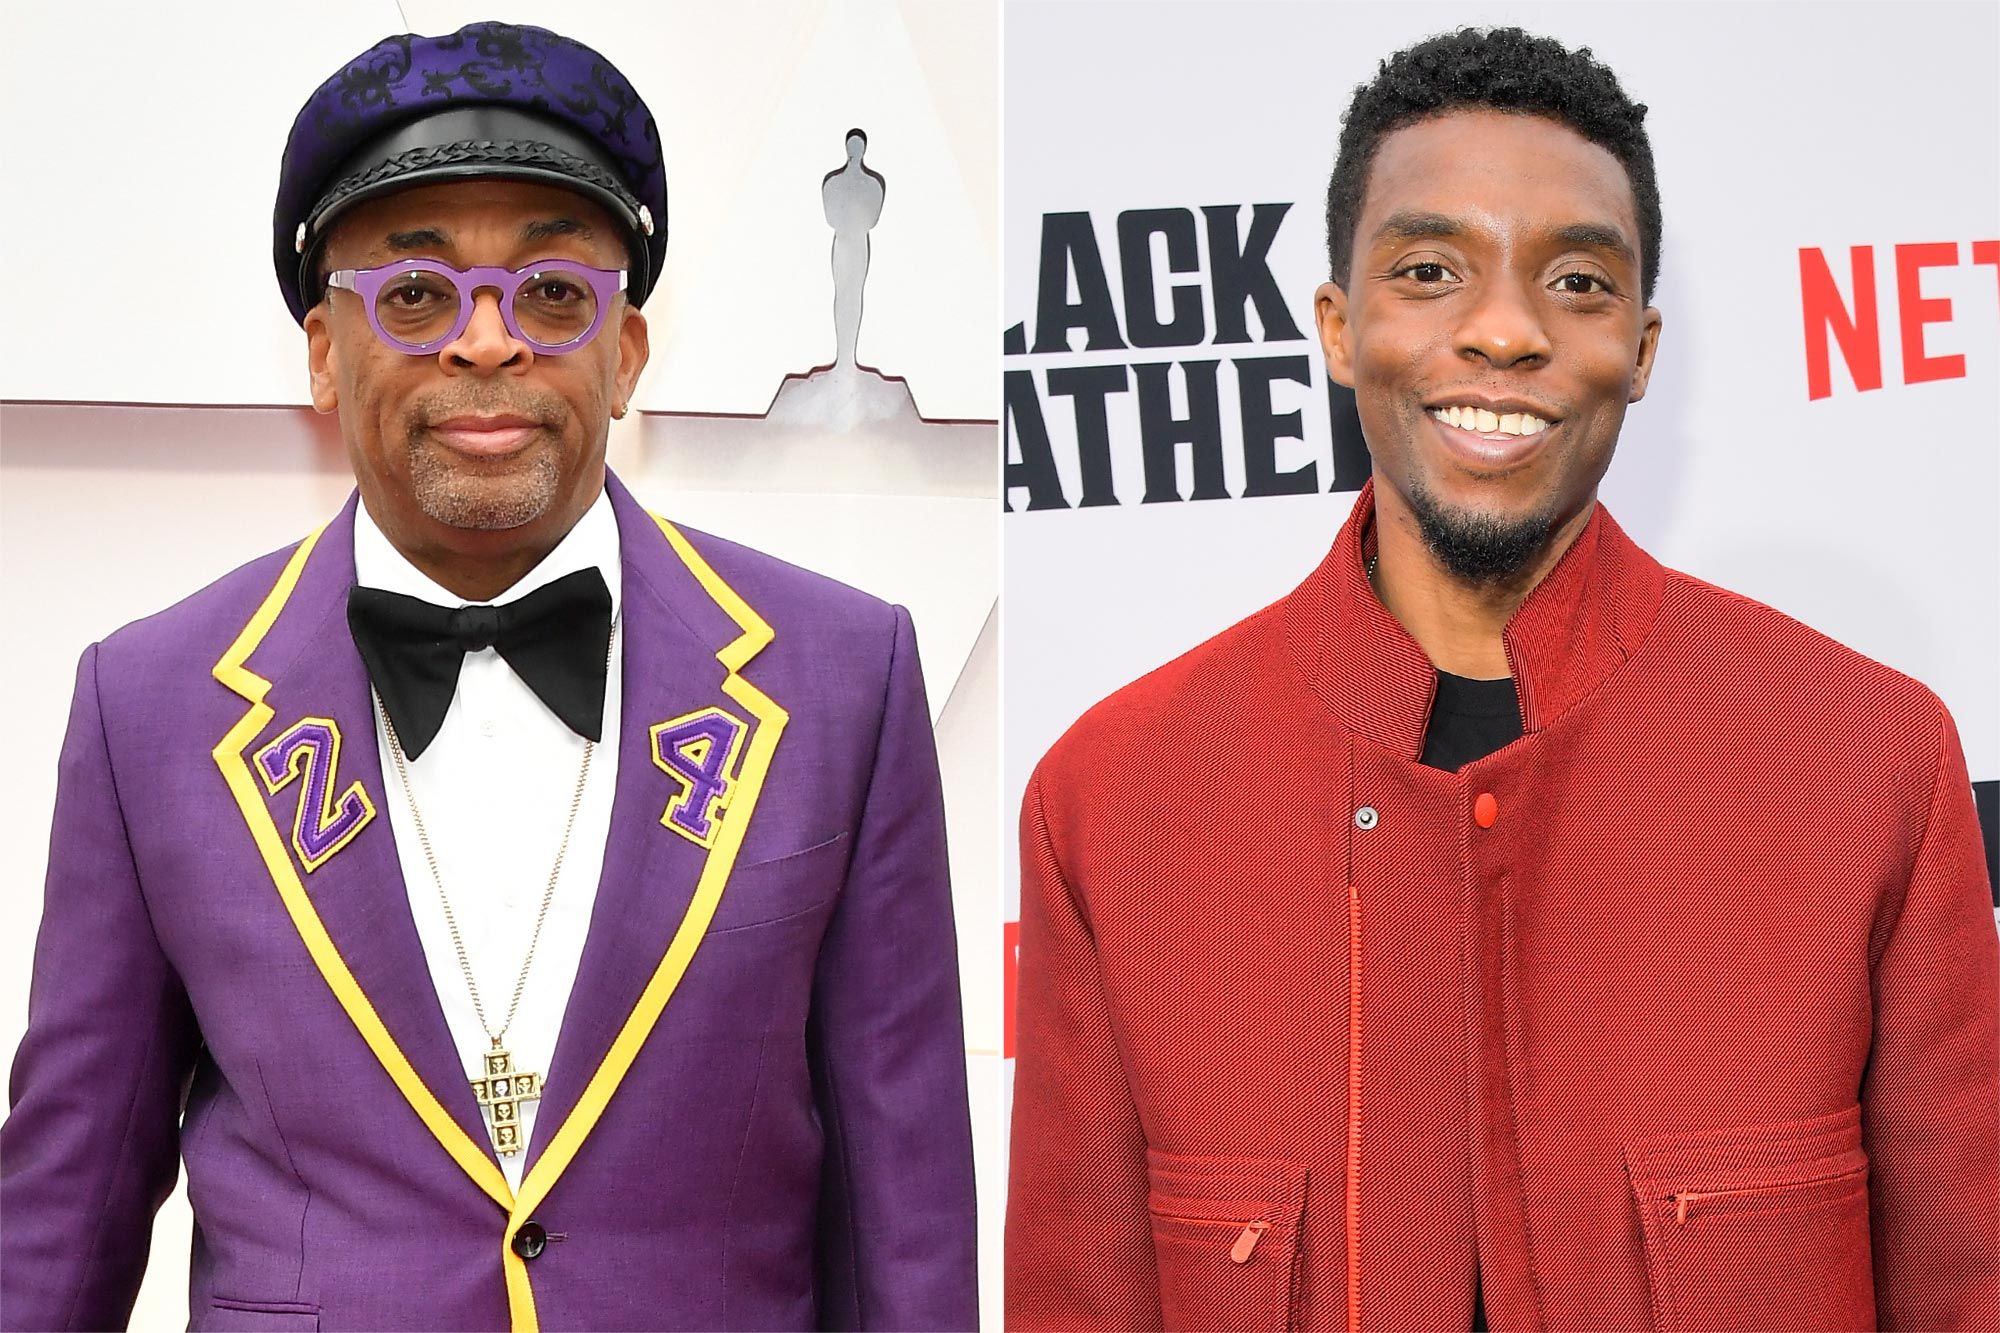 Spike Lee, Chadwick Boseman